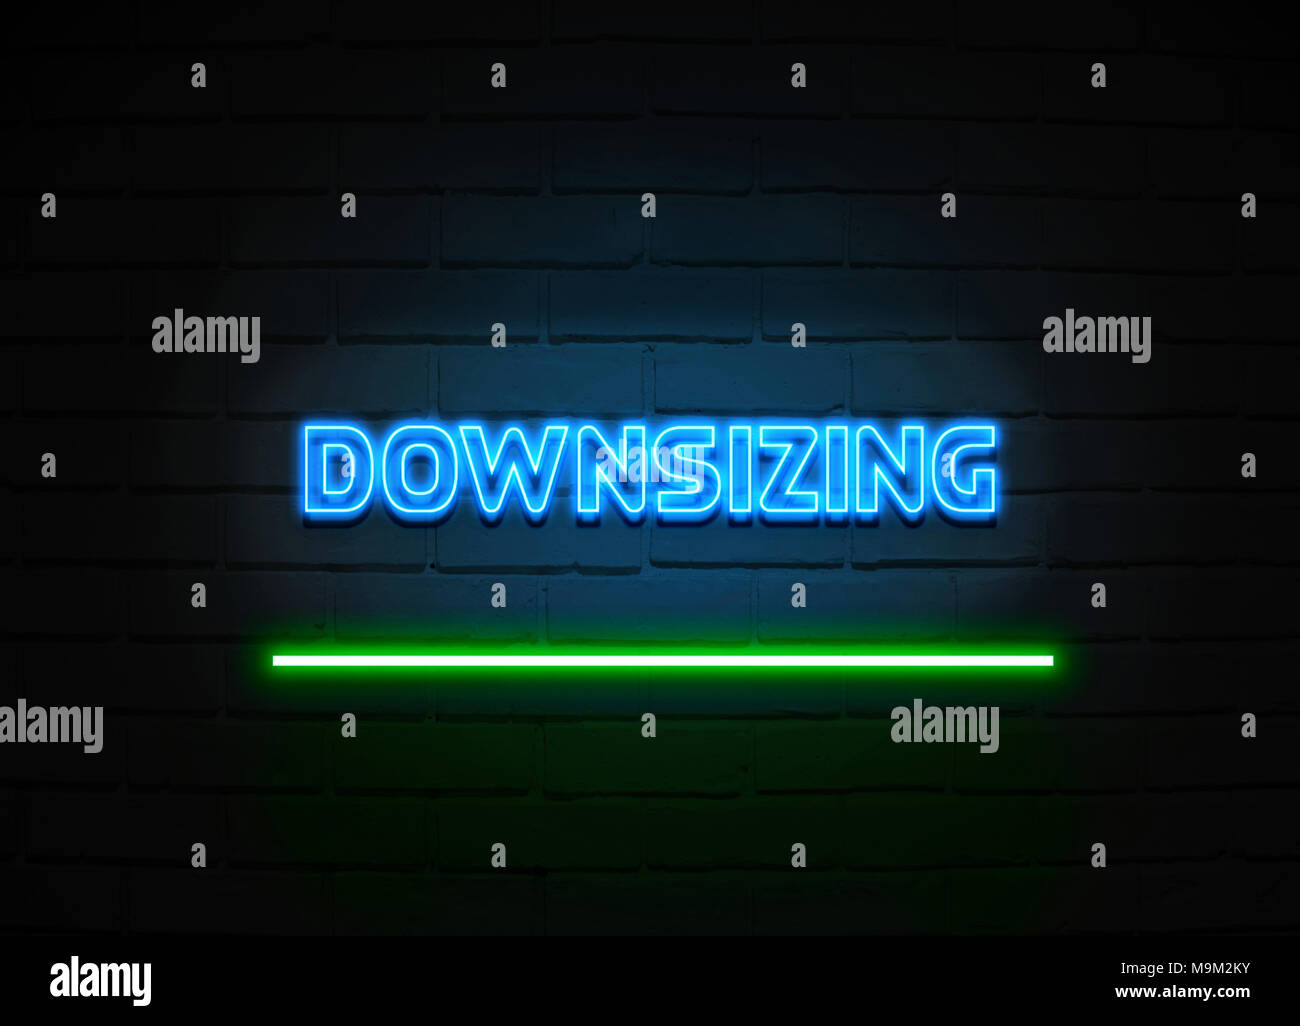 Downsizing neon sign - Glowing Neon Sign on brickwall wall - 3D rendered royalty free stock illustration. - Stock Image